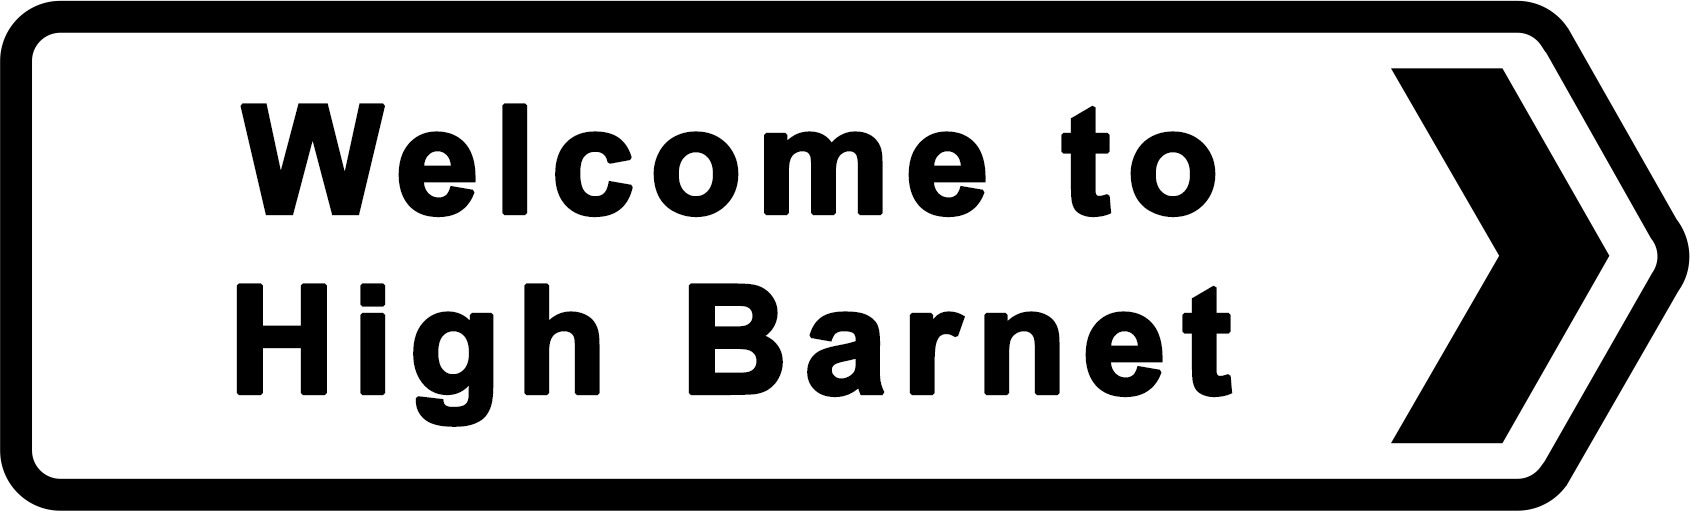 High Barnet Station - Driving lessons in Barnet, EN4/EN5, London borough of Barnet, Hertfordshire, Greater London